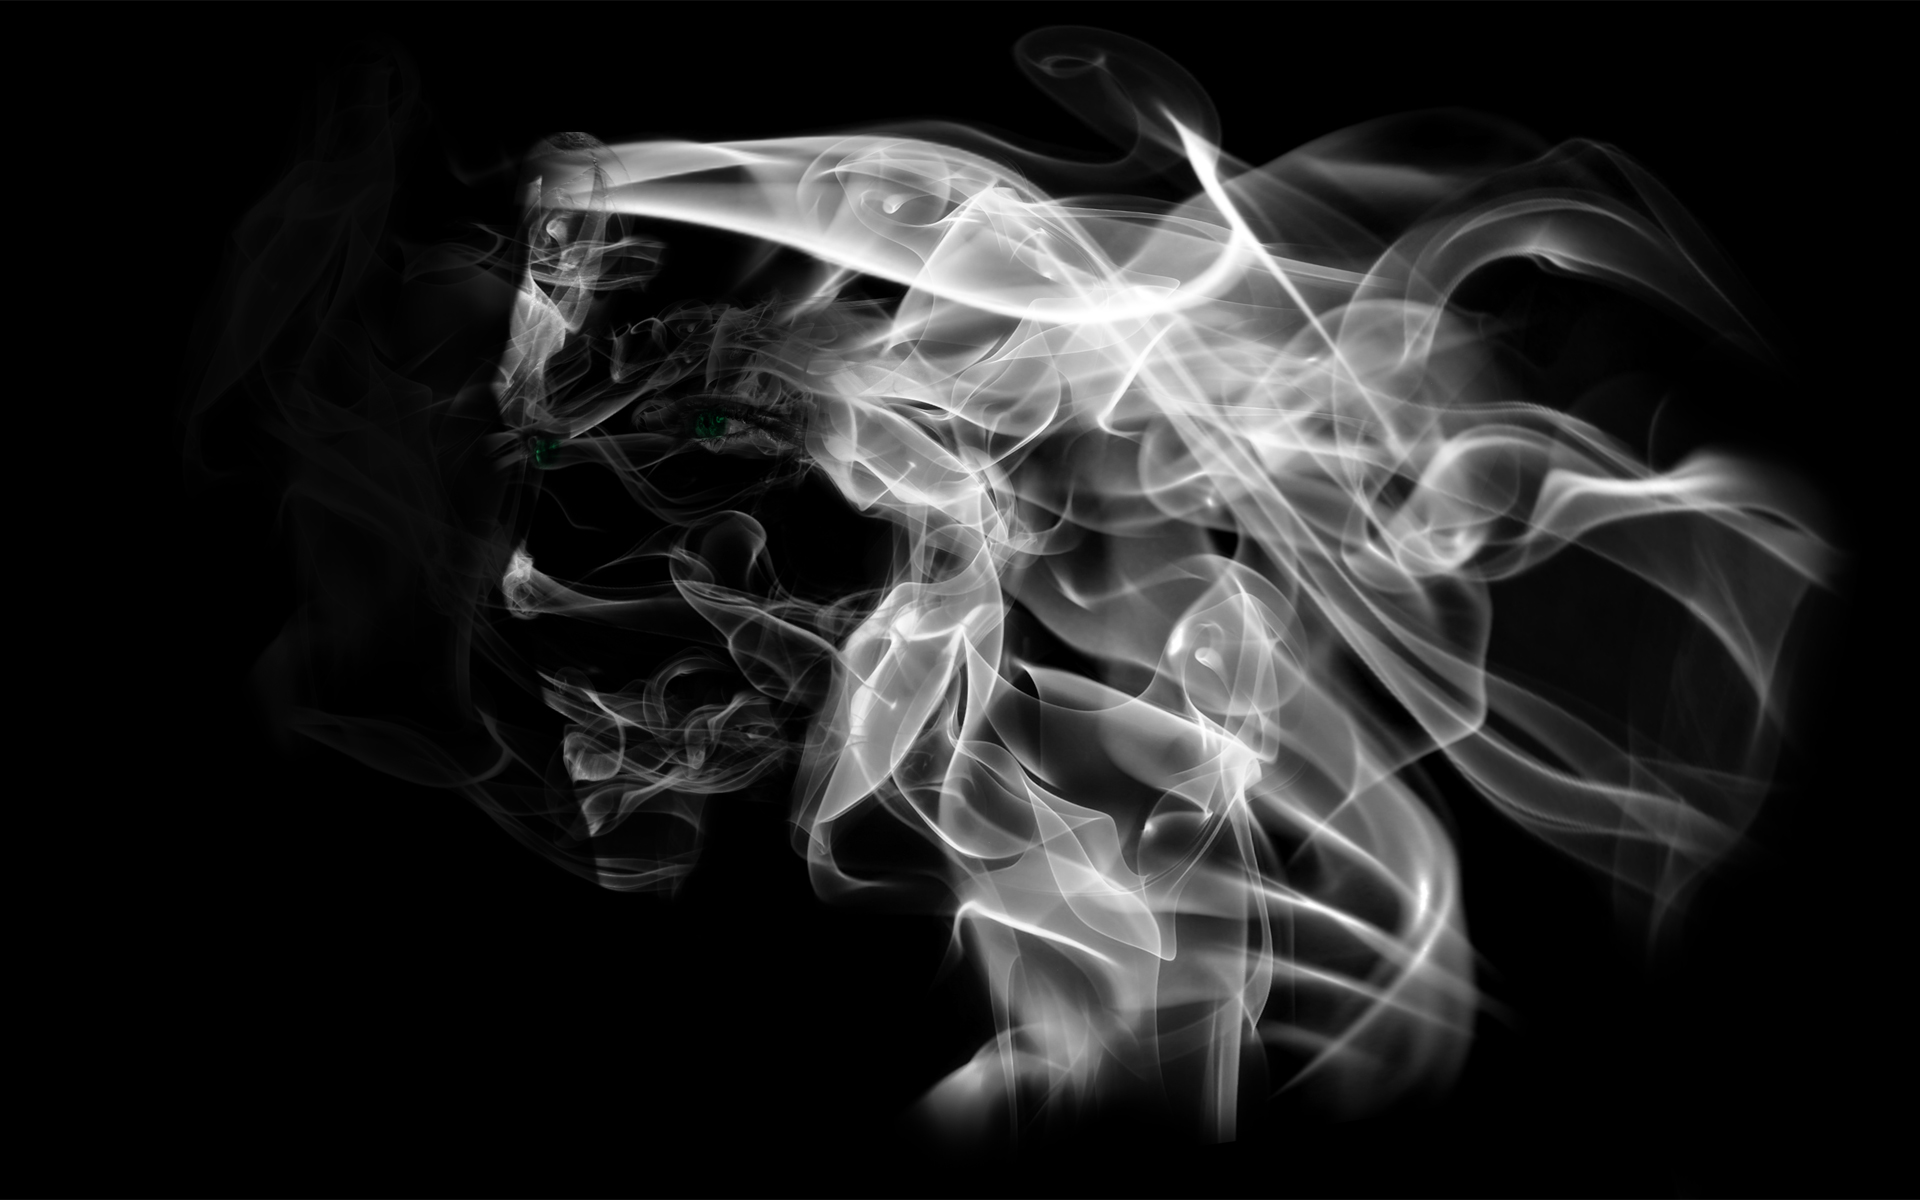 Smoke Photography Wallpaper HD 8945 Wallpaper High Resolution 1920x1200